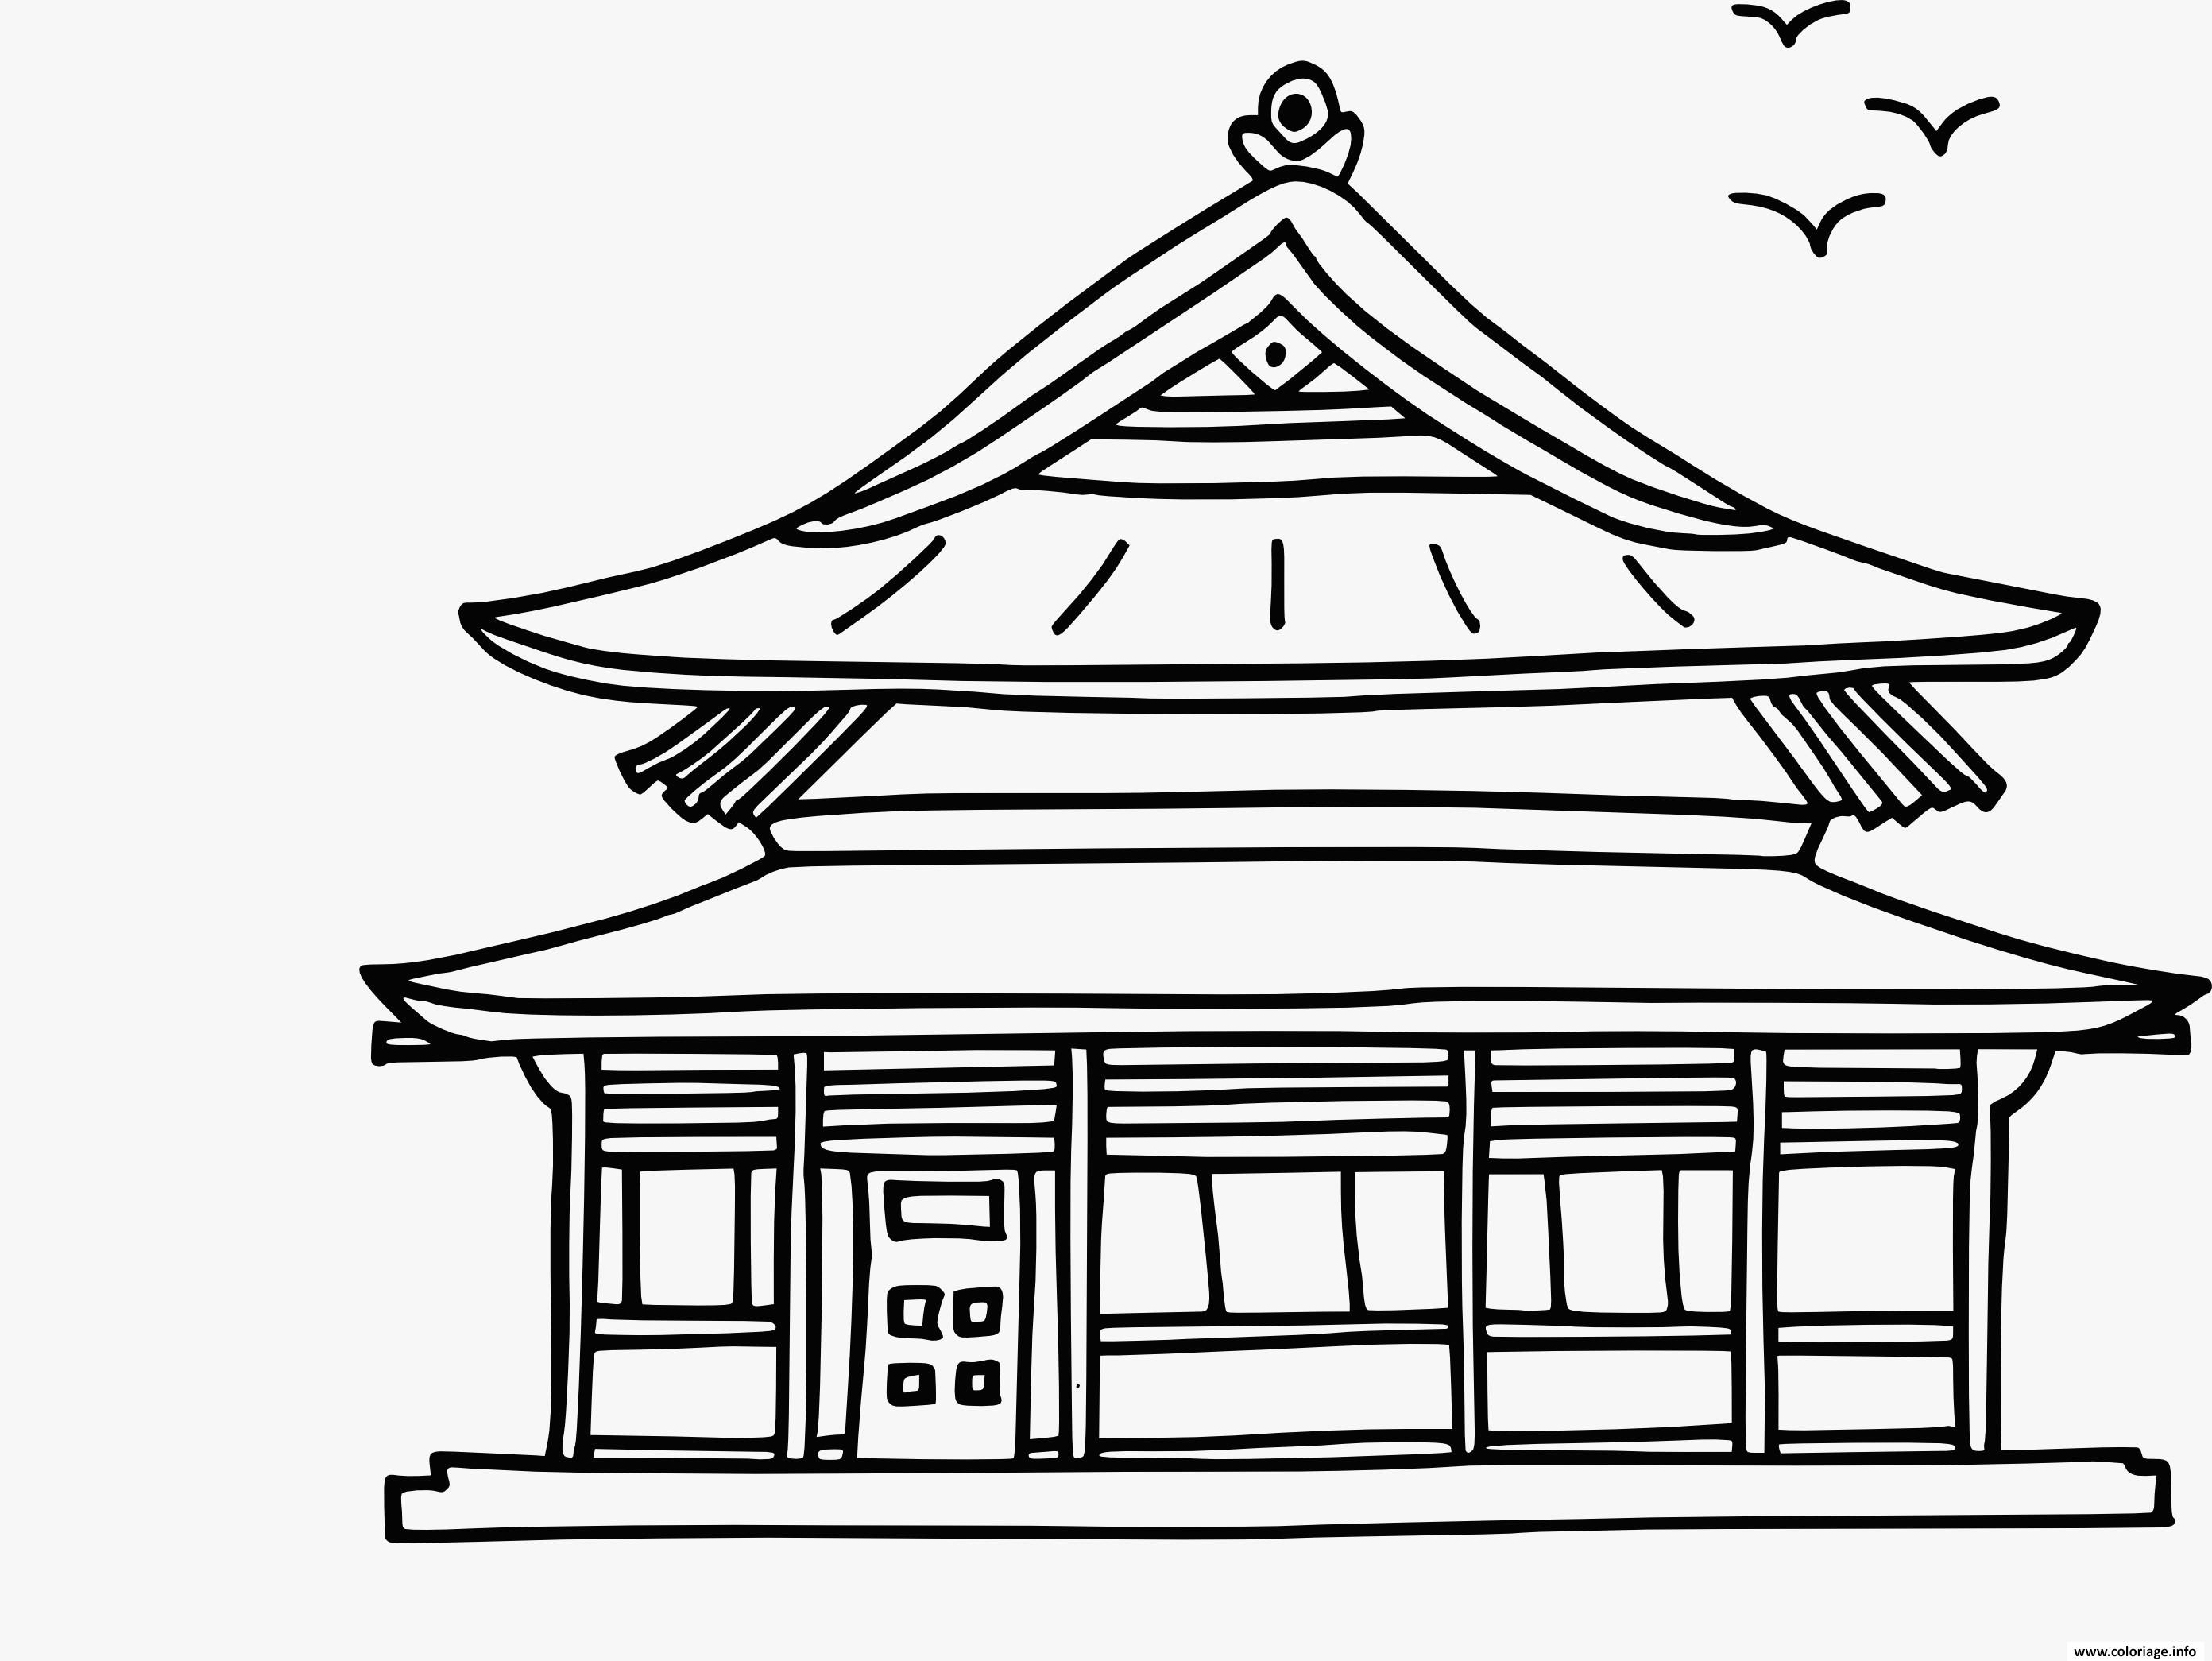 Coloriage Maison Asiatique Chinoise Traditionnelle Jecolorie Com